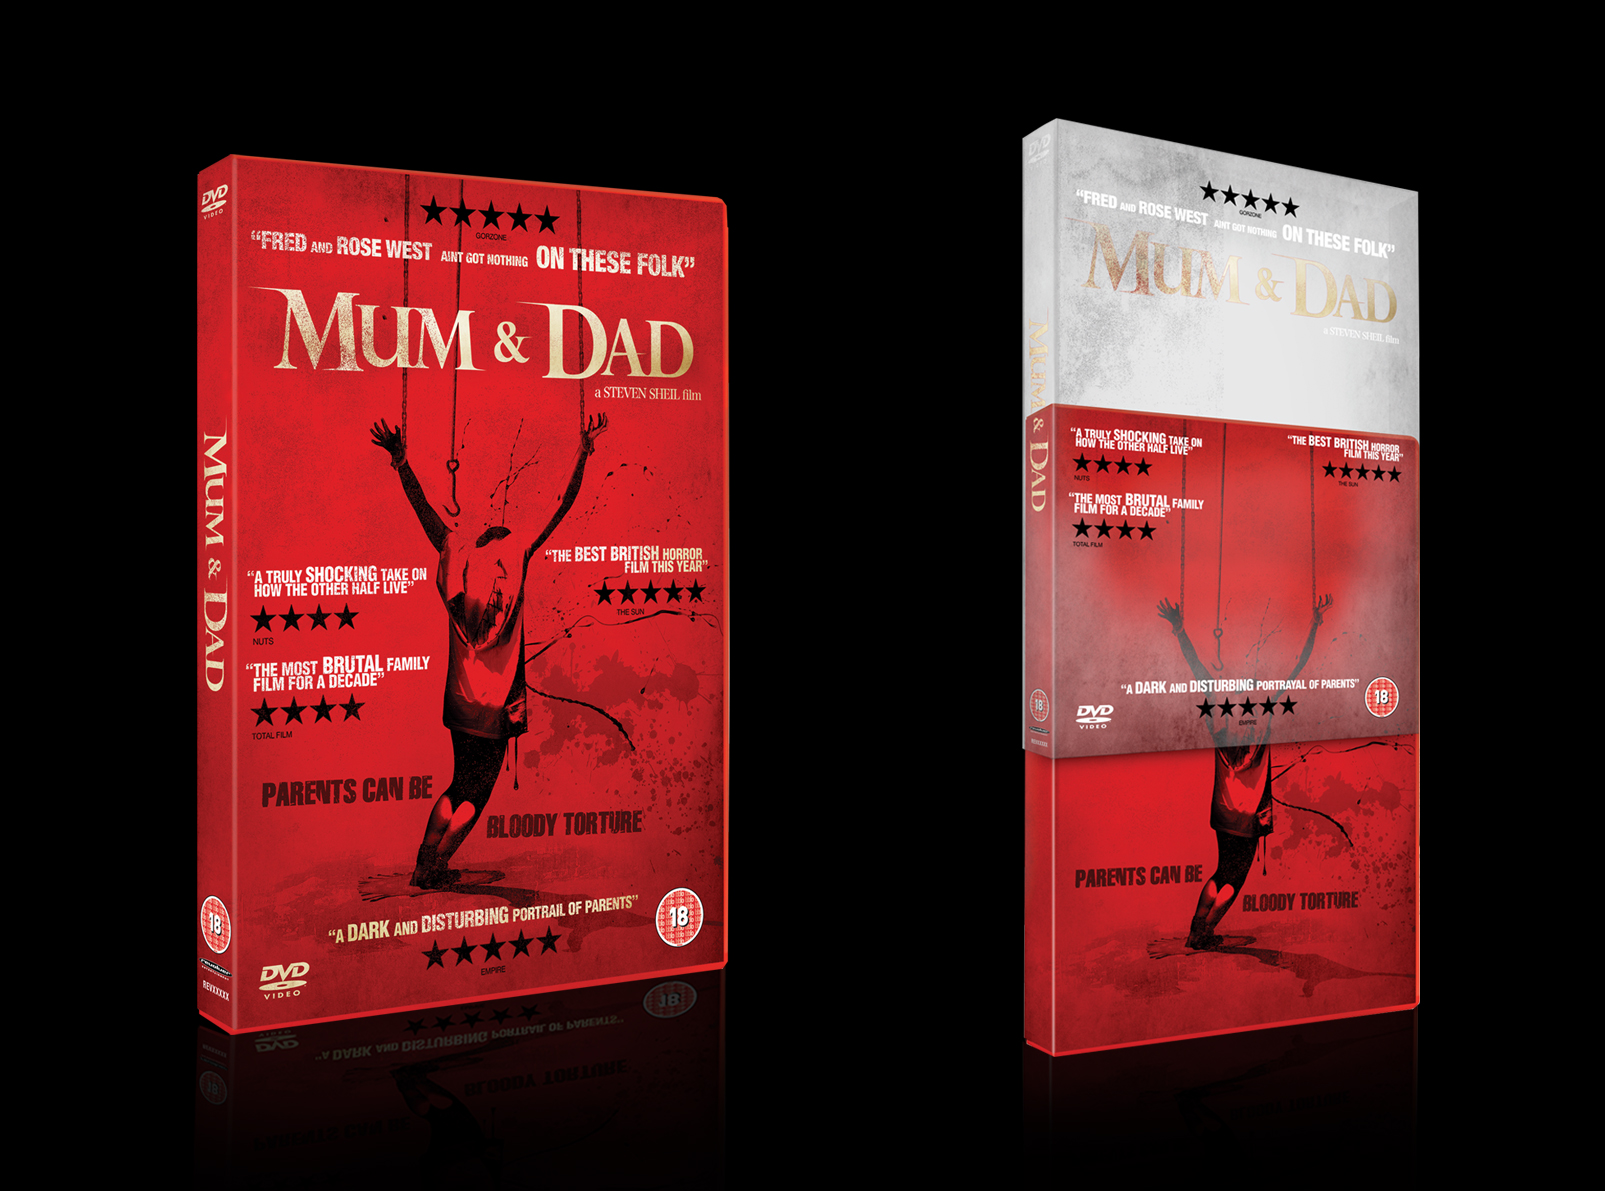 Mum & Dad DVD 3D visual